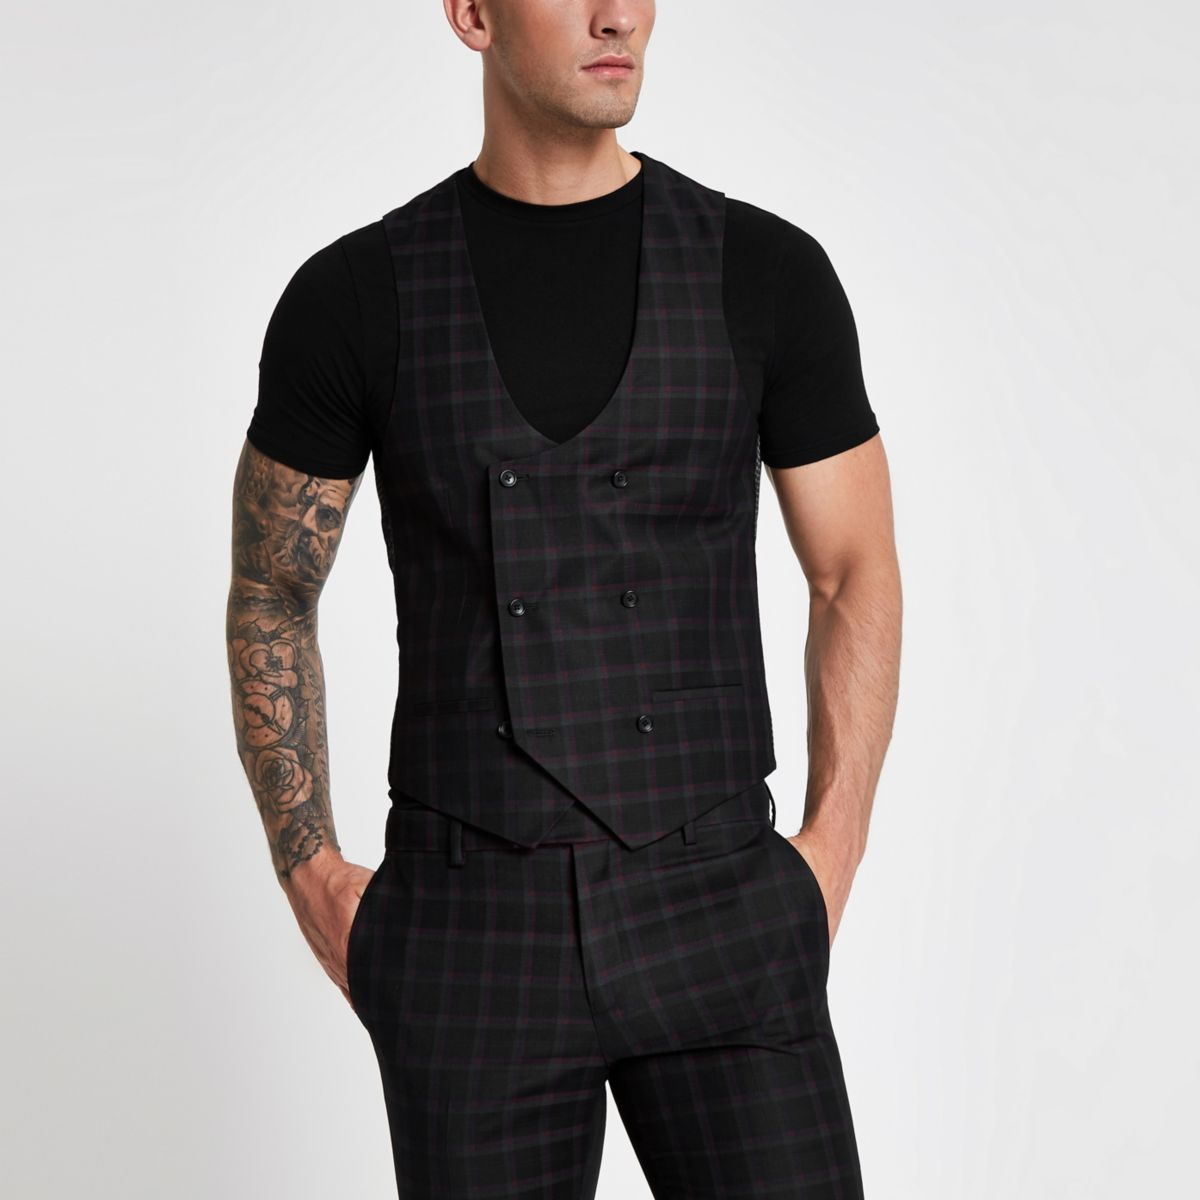 Black and burgundy check suit waistcoat